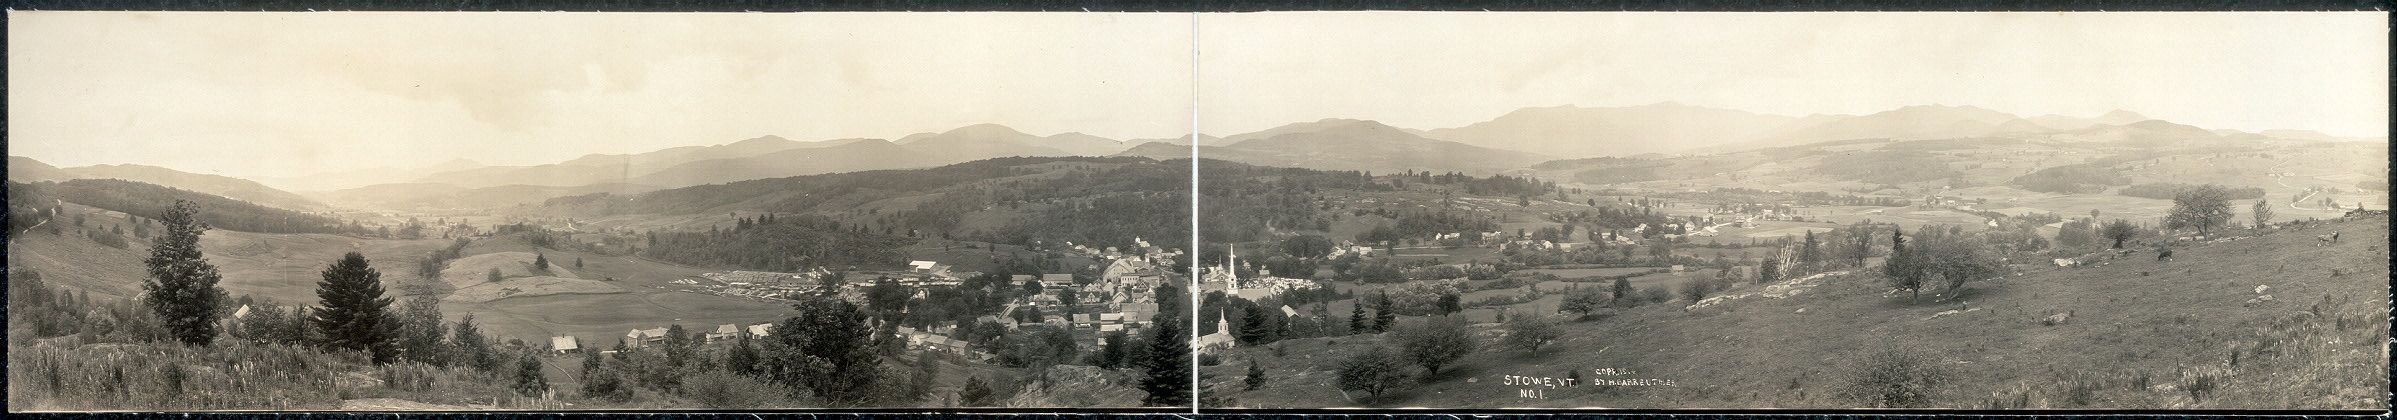 Panoramic view of Stowe Vermont from 1914